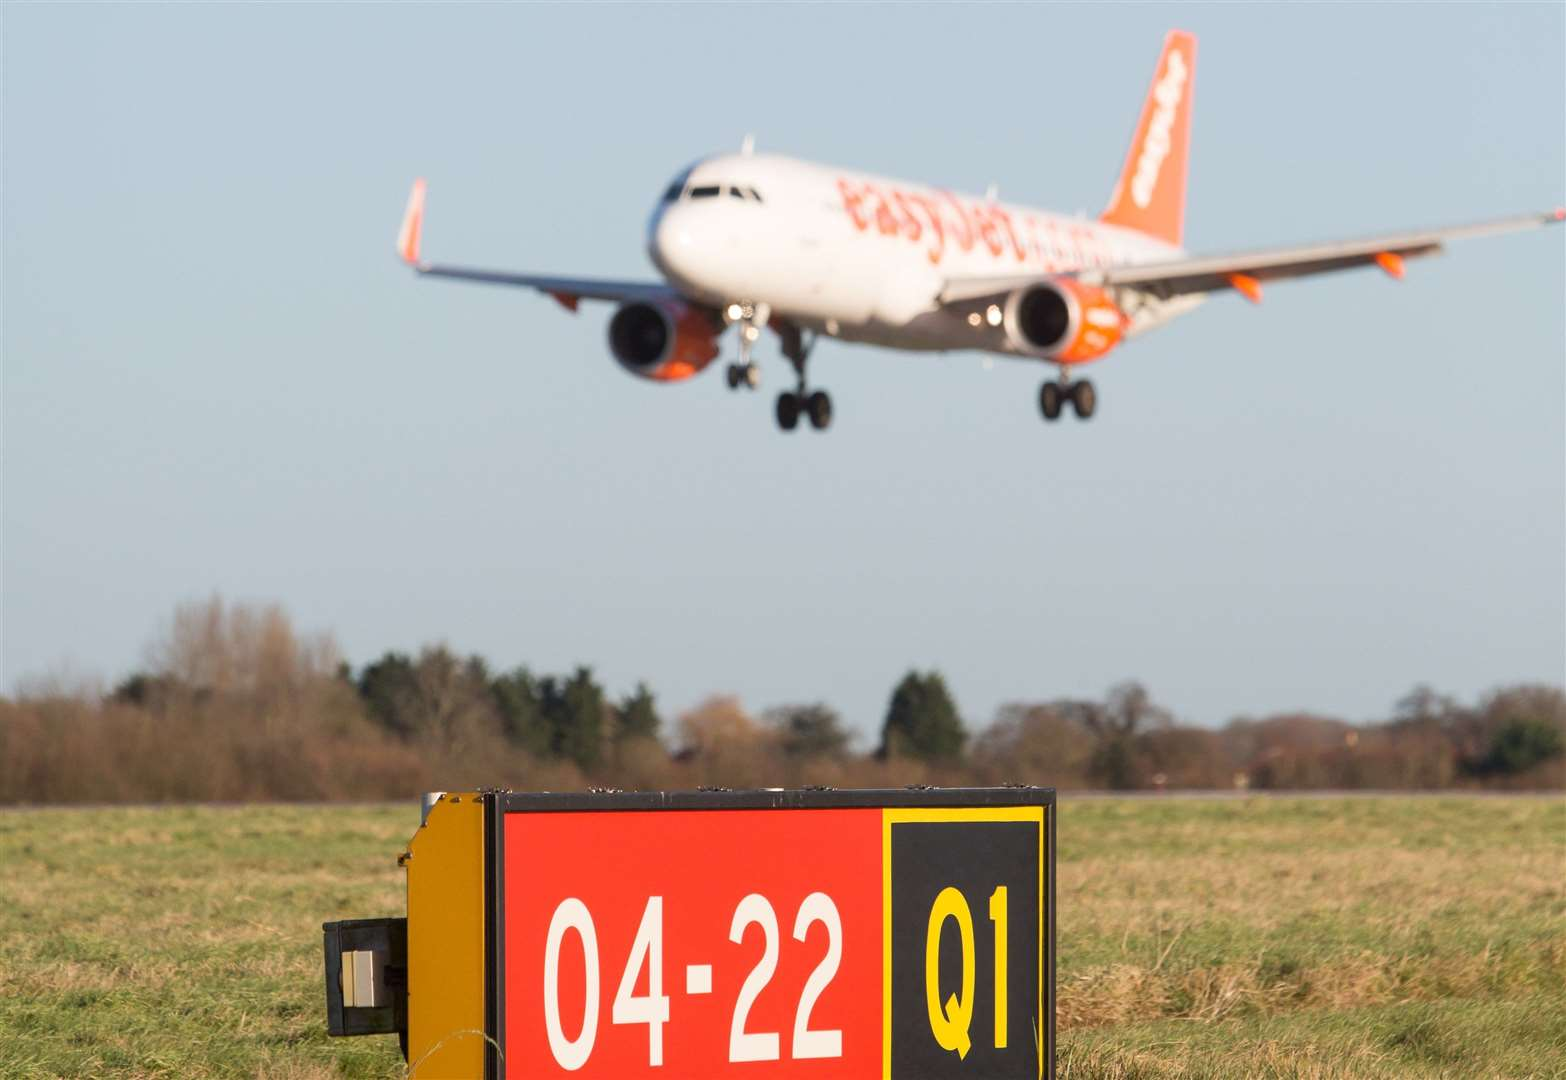 Relief for Stansted Airport easyJet passengers as one-day strike is suspended